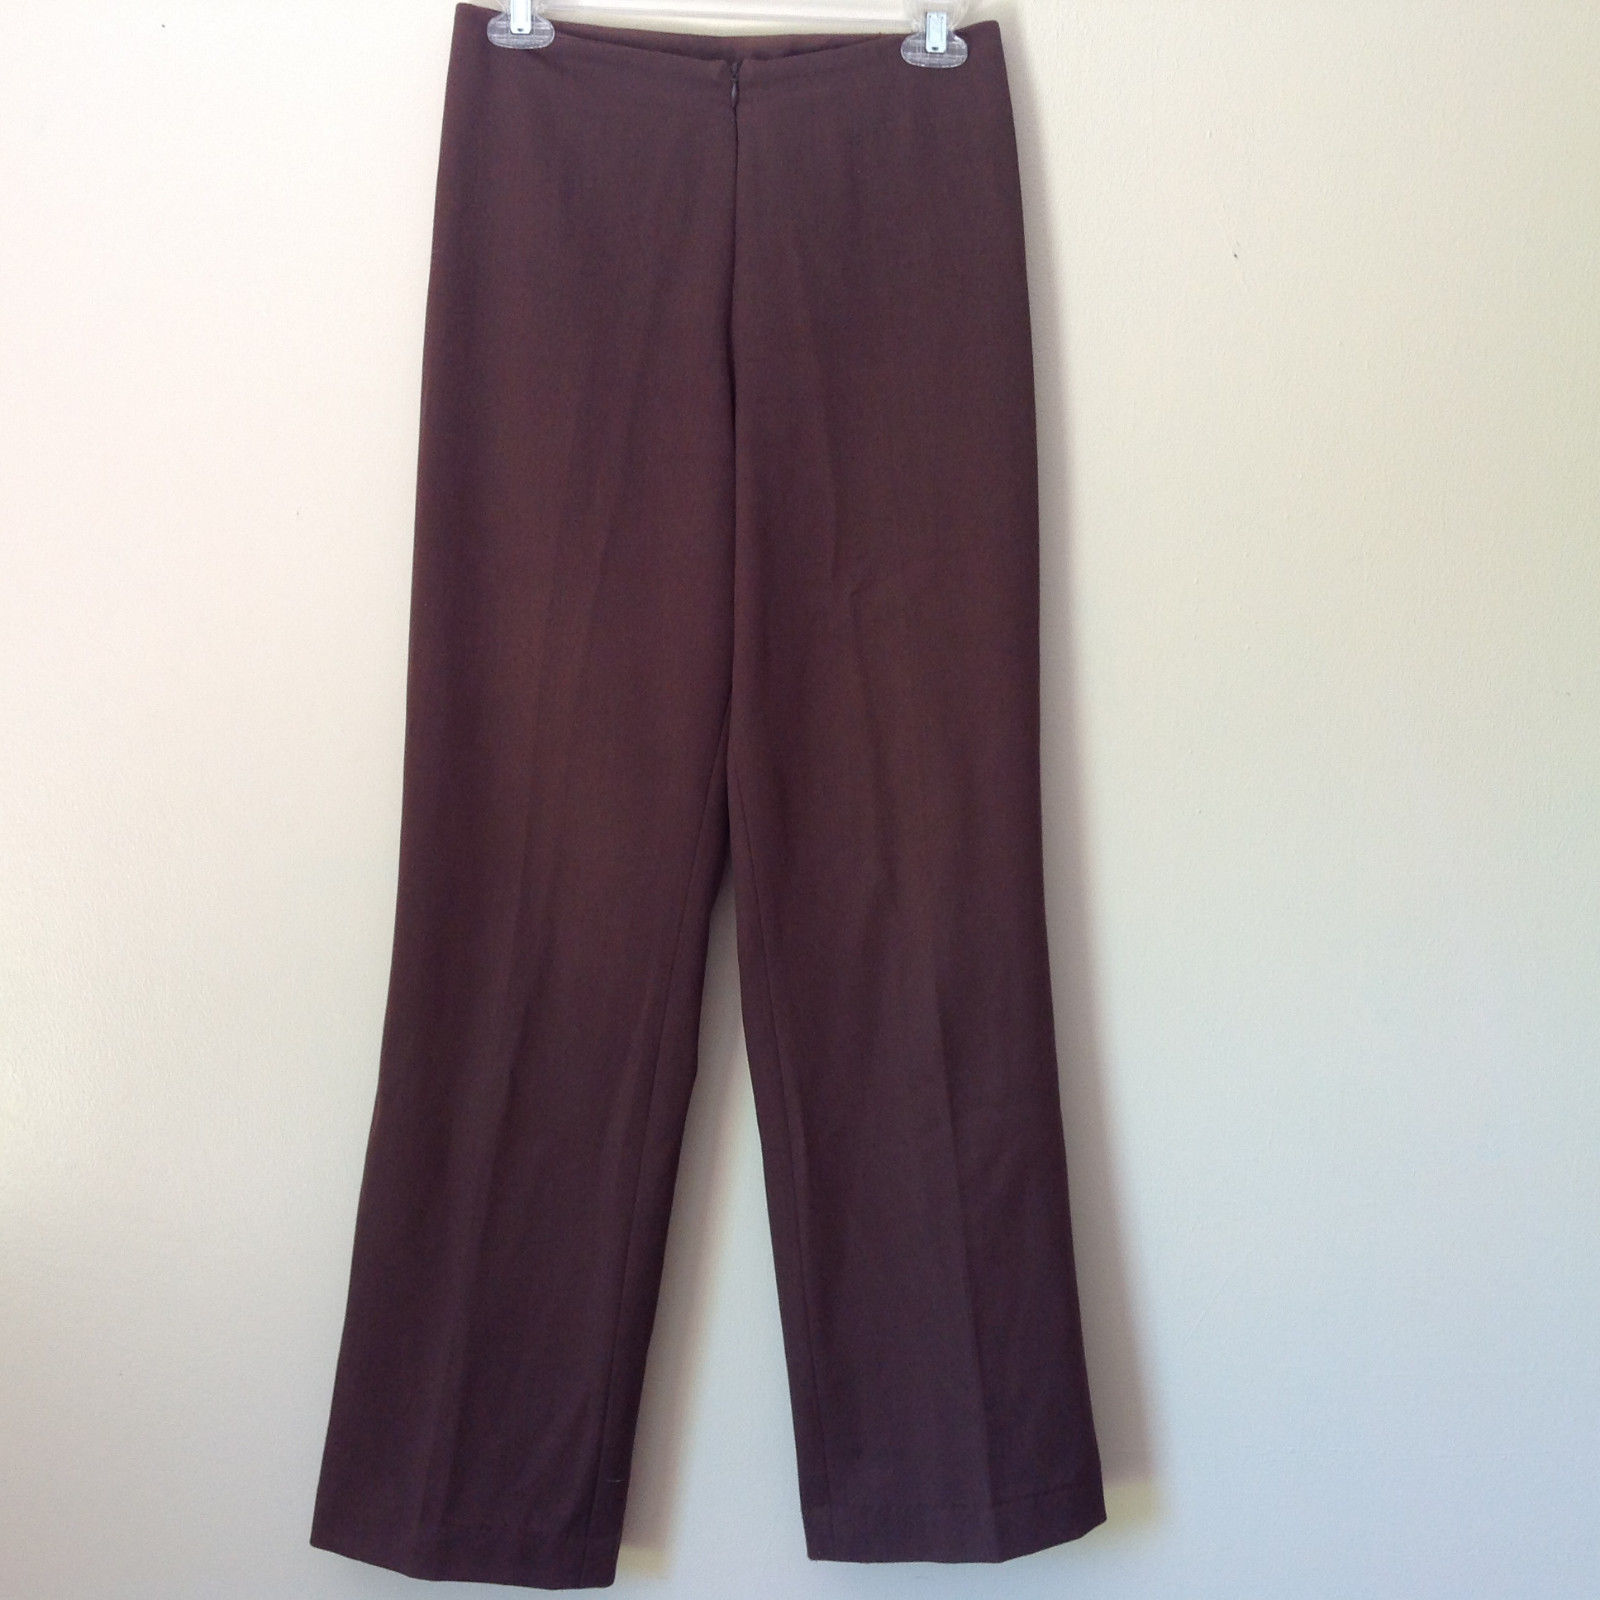 Dark Brown Dress Pants by Avalin Size 6 Made in USA Front Zipper Formal